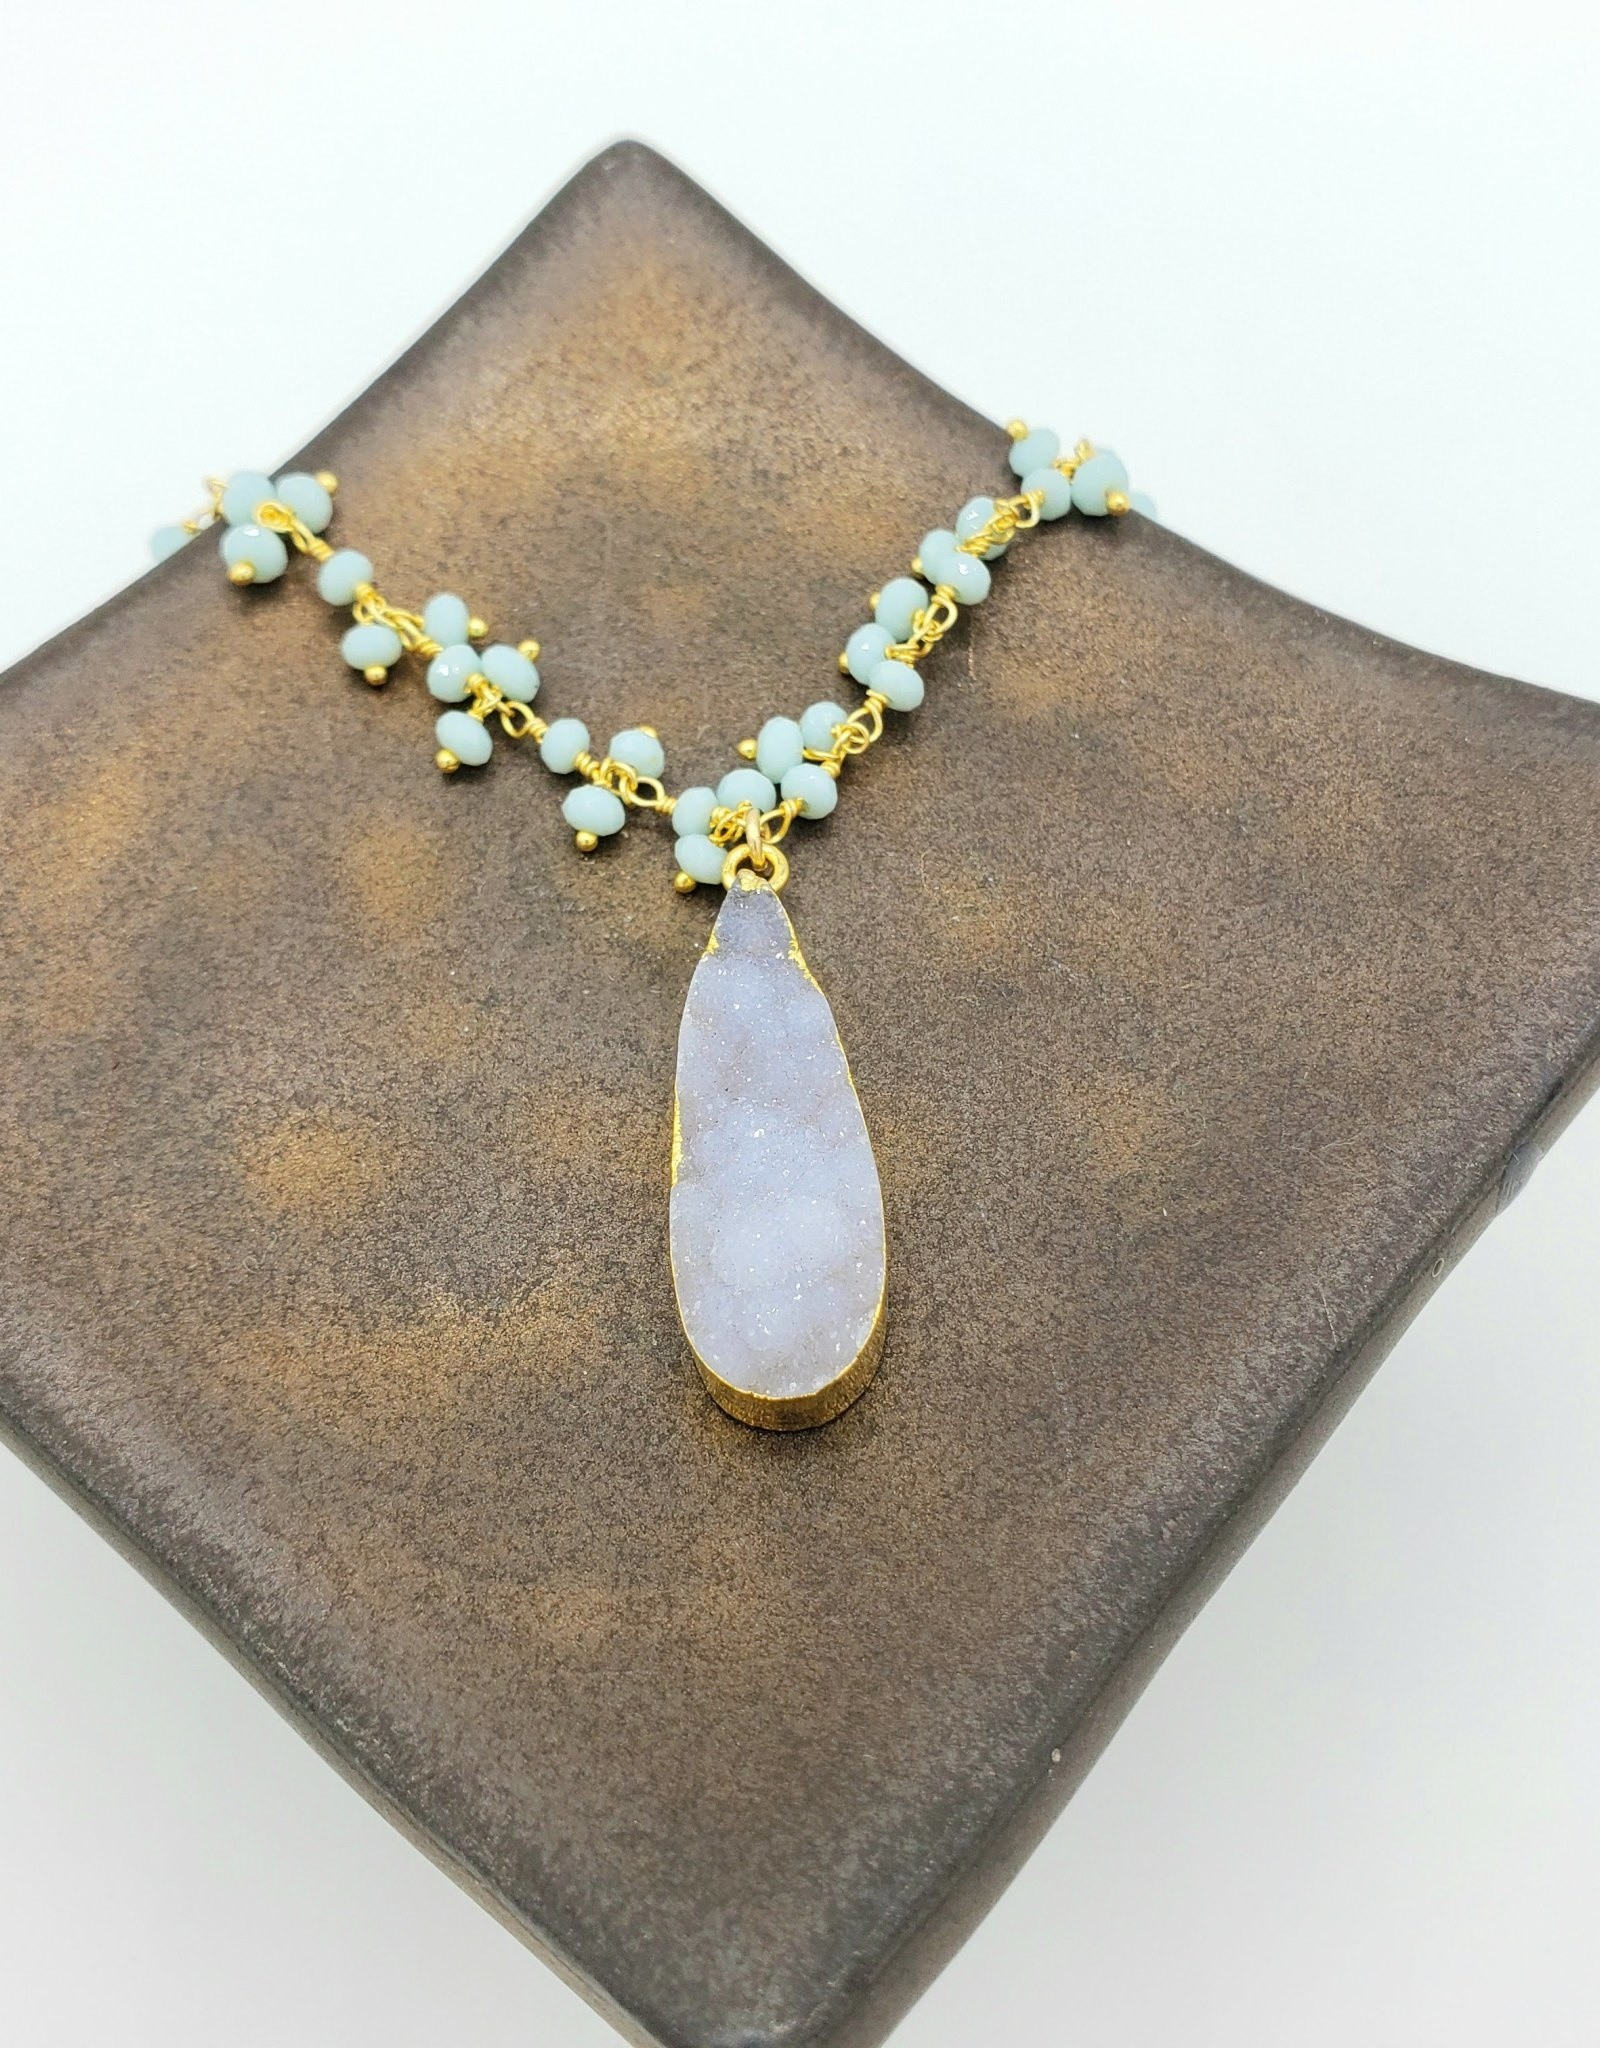 Redux Druzy White Quartz Teardrop, Tiny Faceted Pastel Clusters on Gold Fill Chain